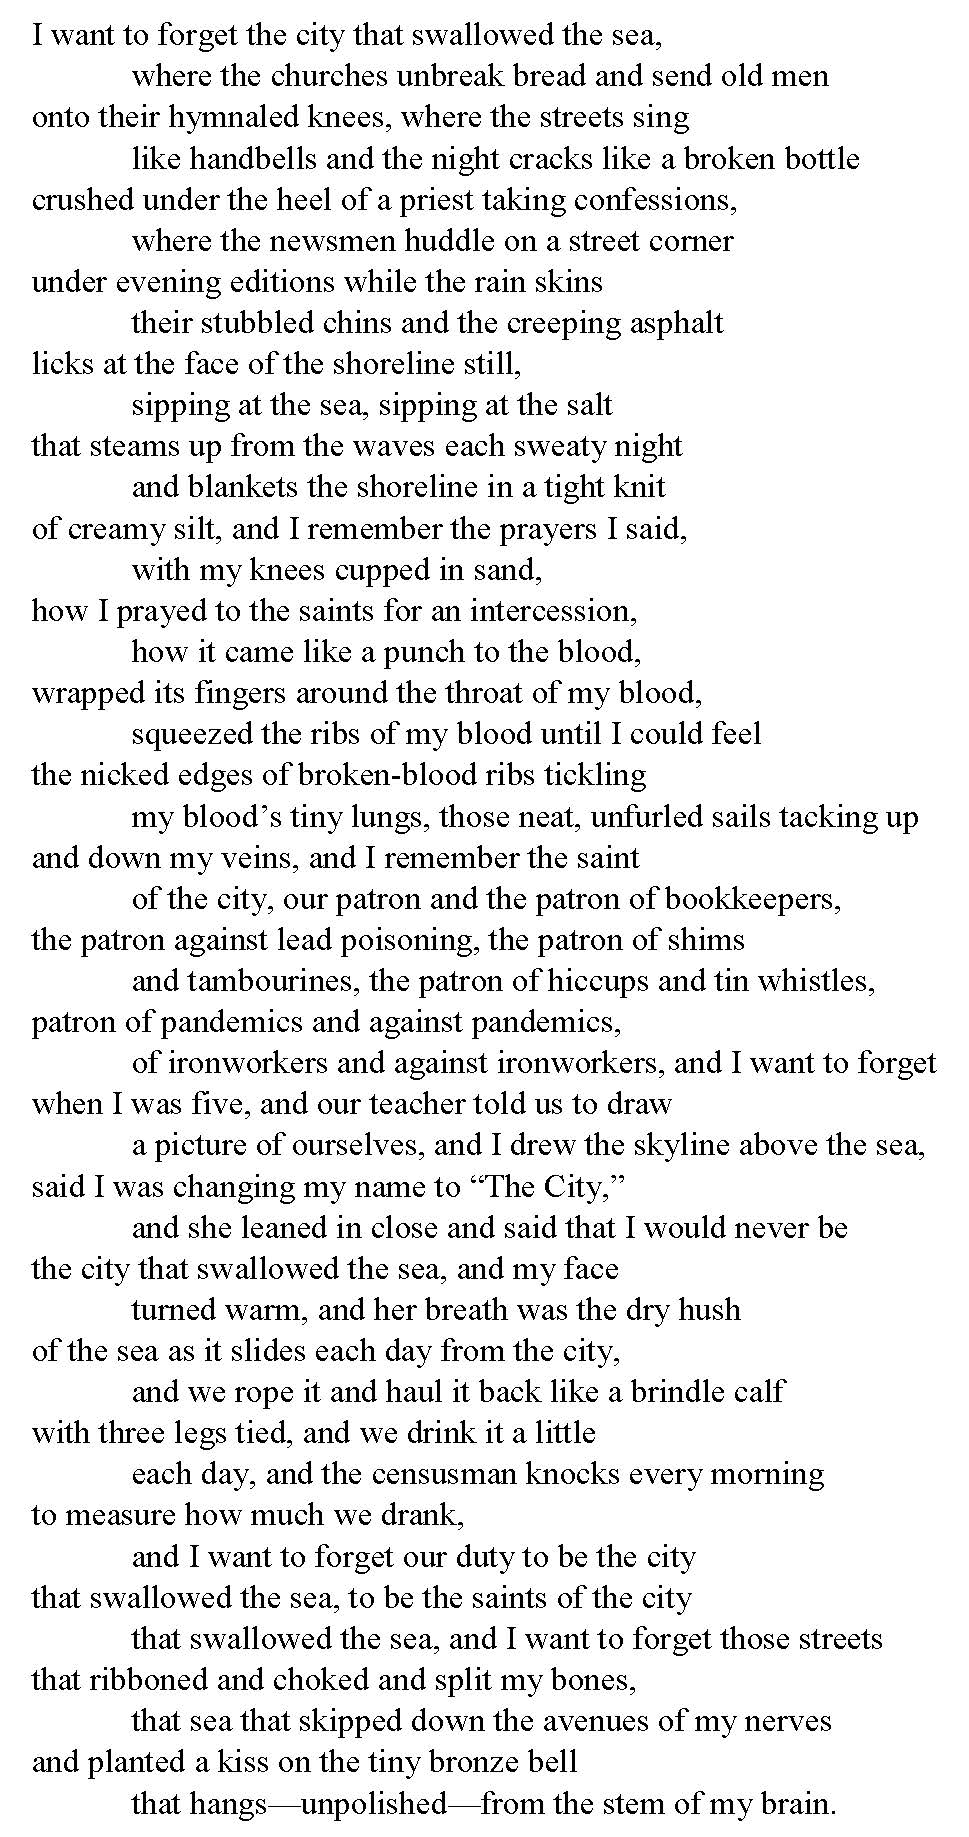 Teitman. Litany for the City. The City That Swallowed the Sea